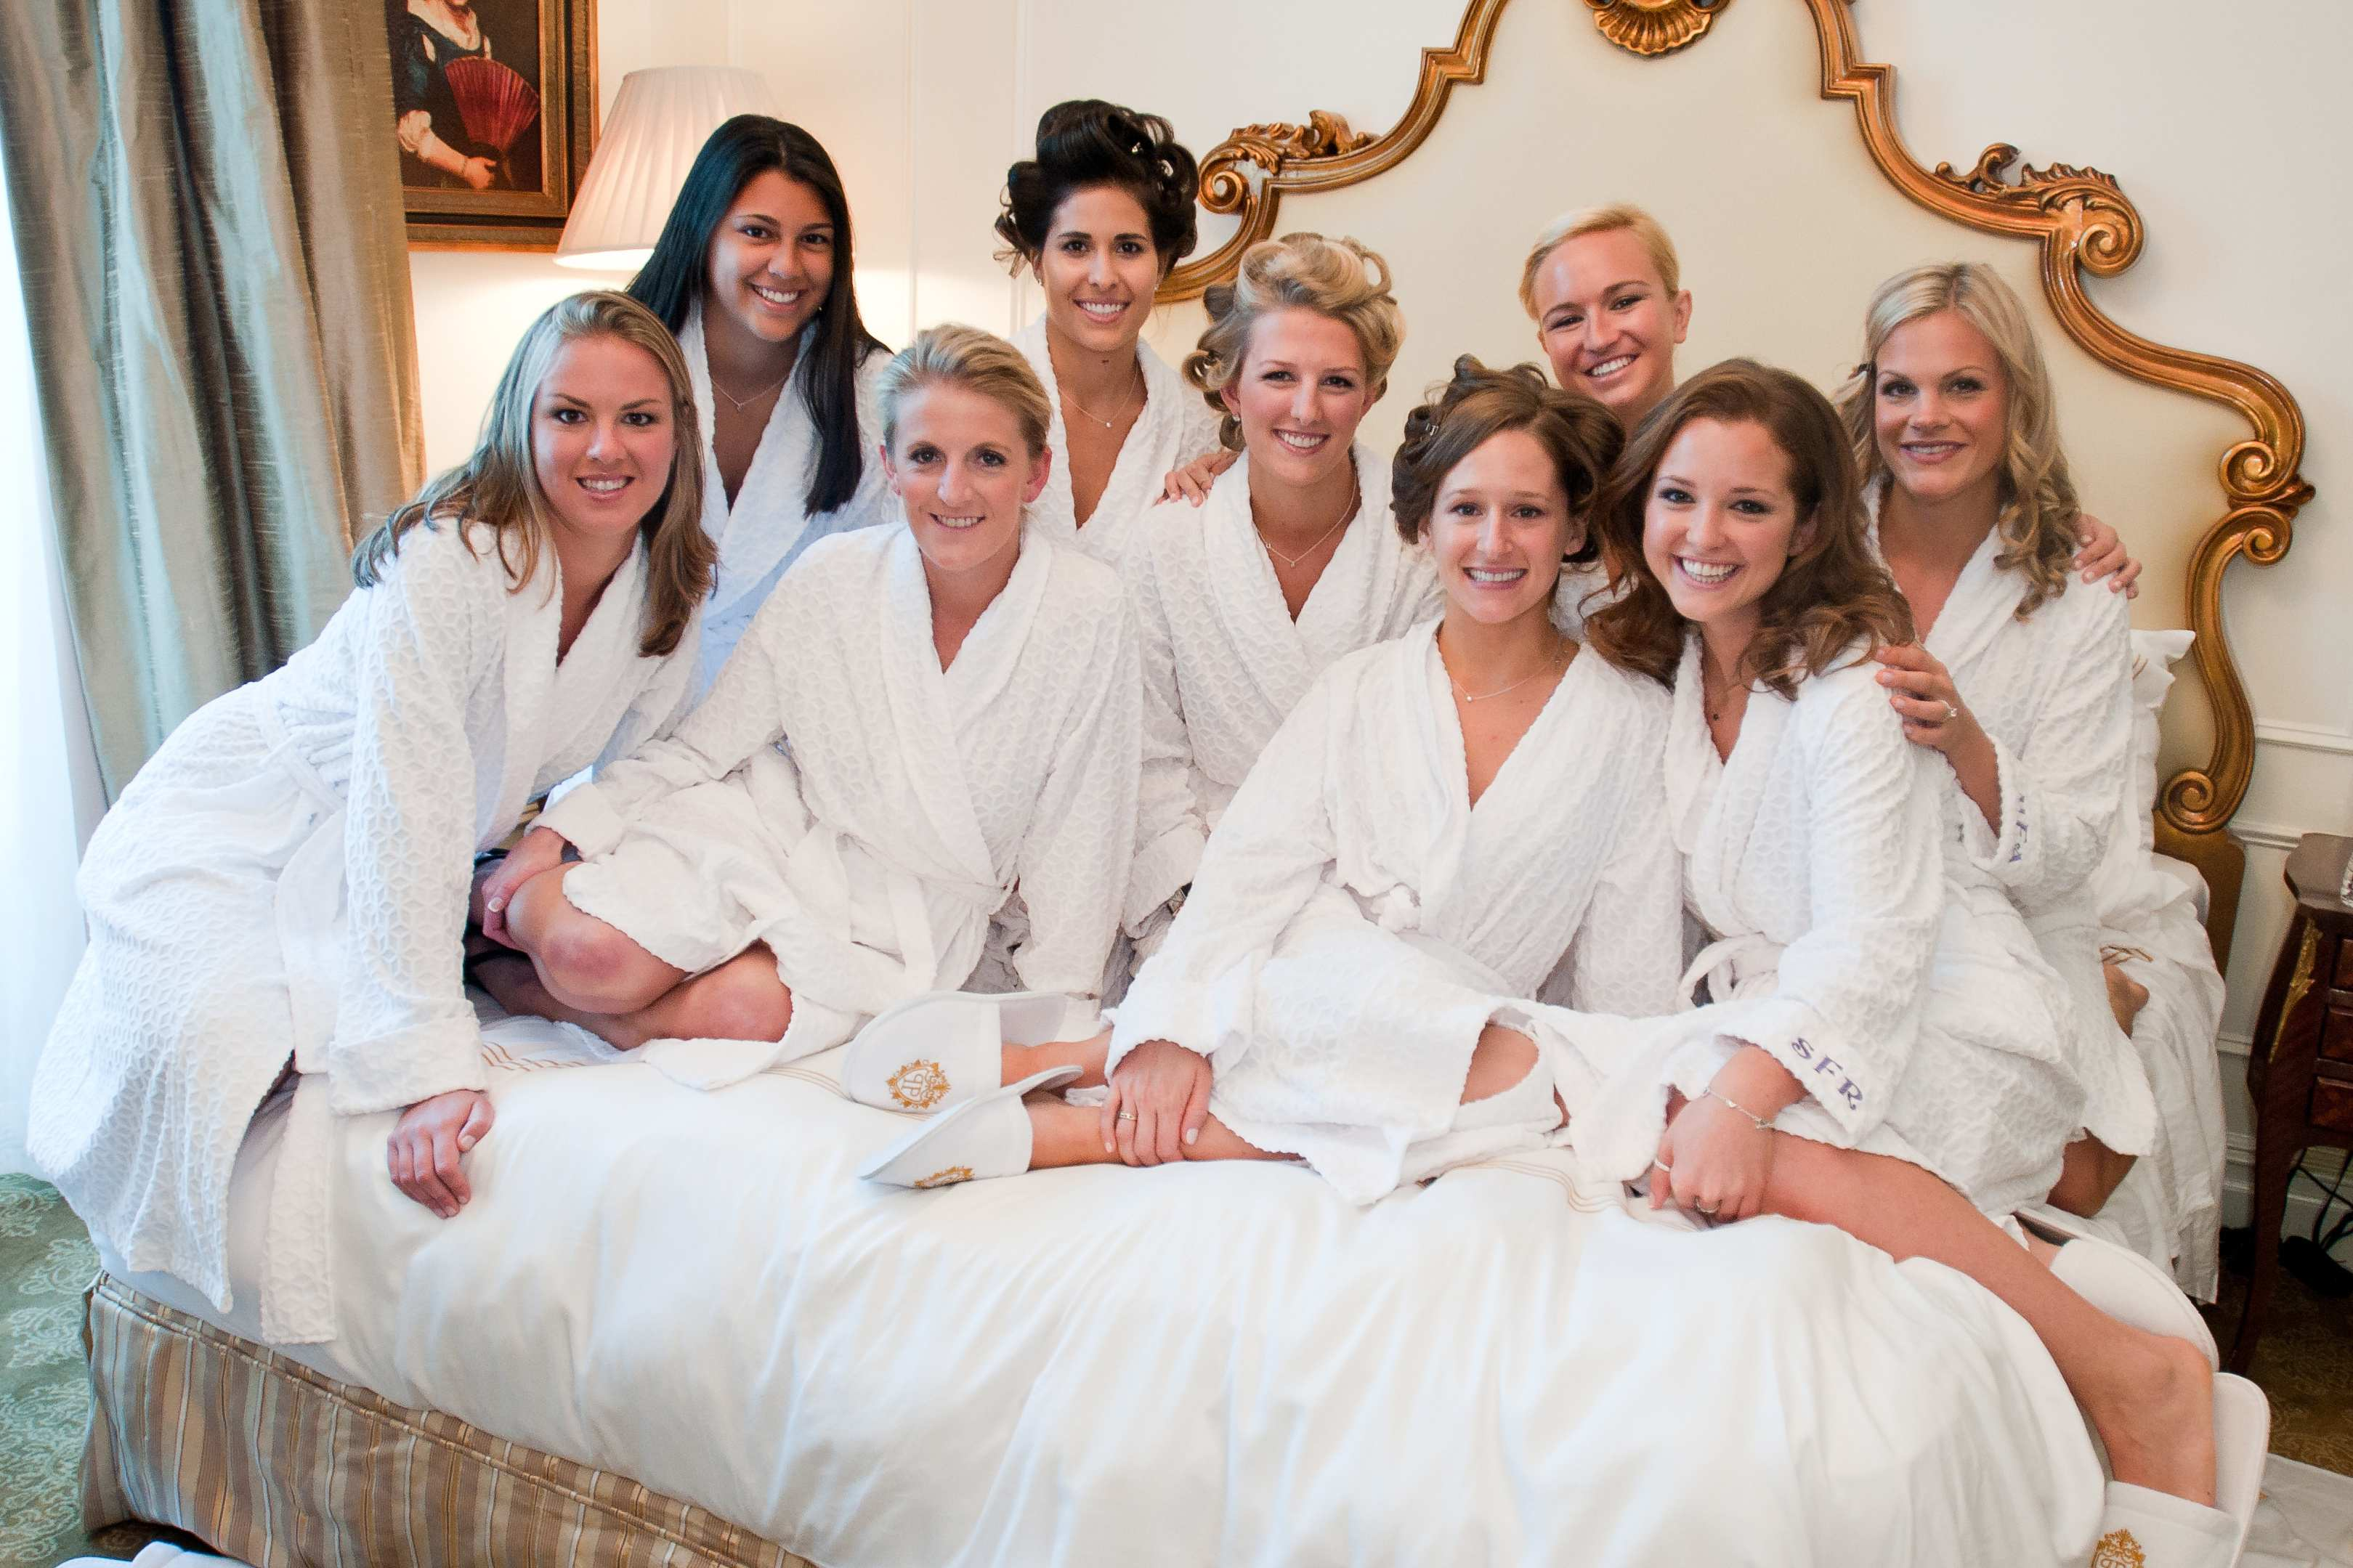 Bachelorette slumber party 15 movies to watch inside weddings movie night with your bridesmaids bachelorette slumber party ombrellifo Images